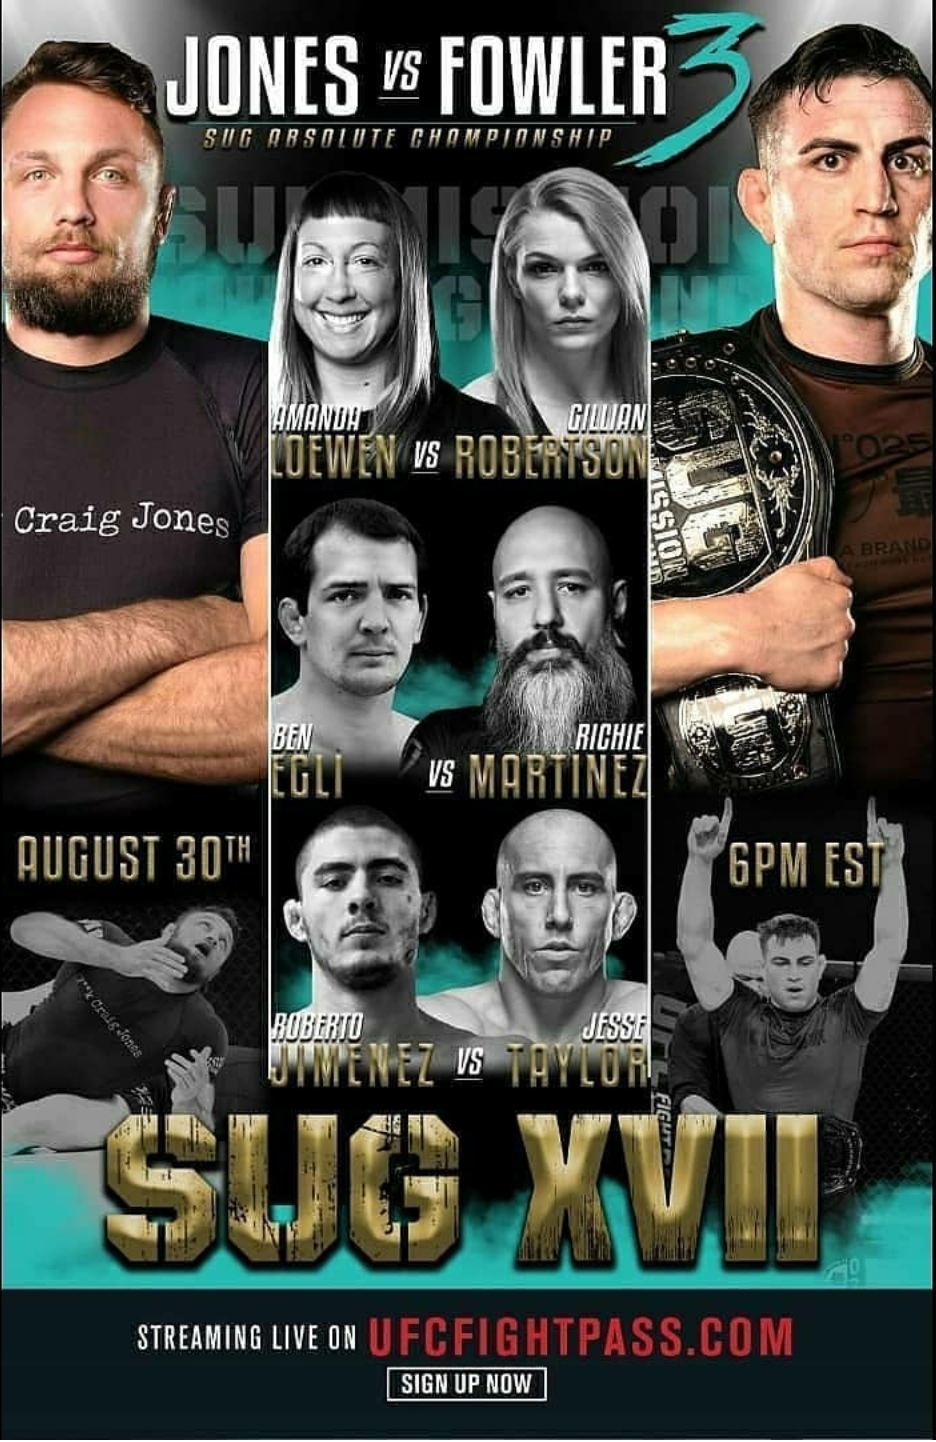 Chael Sonnen Presents Submission Underground 17 When: August 30, 2020 at 6pm ET Where: #SUGisland How To Watch: UFC Fight Pass